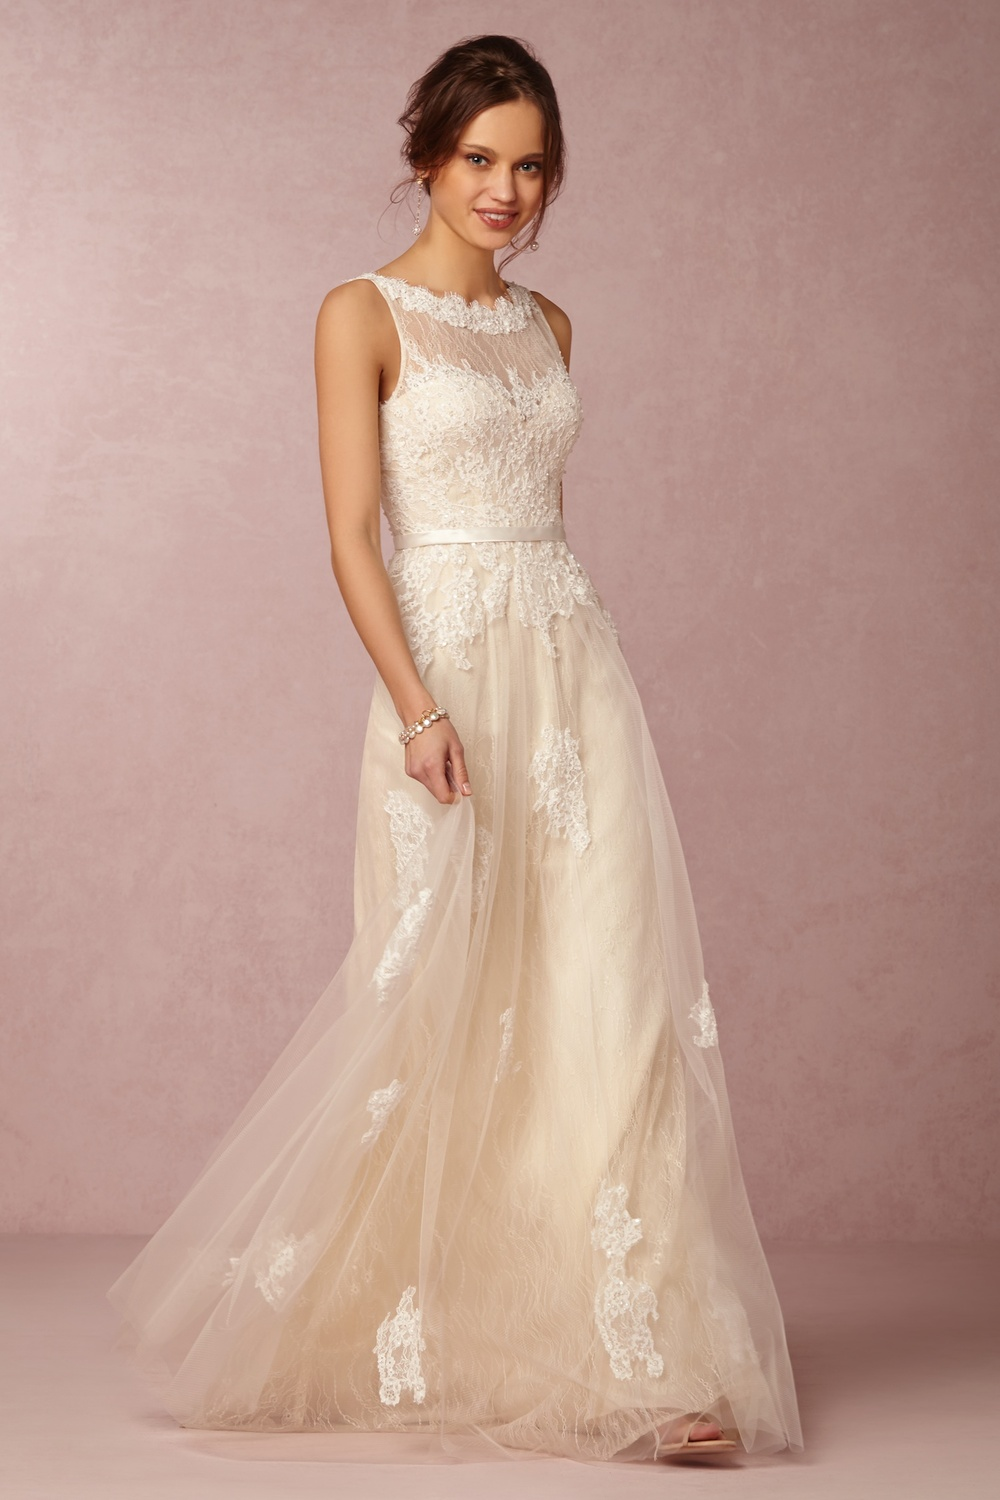 The Georgia Gown was made with Southern brides in mind. Georgia Gown; $1,000